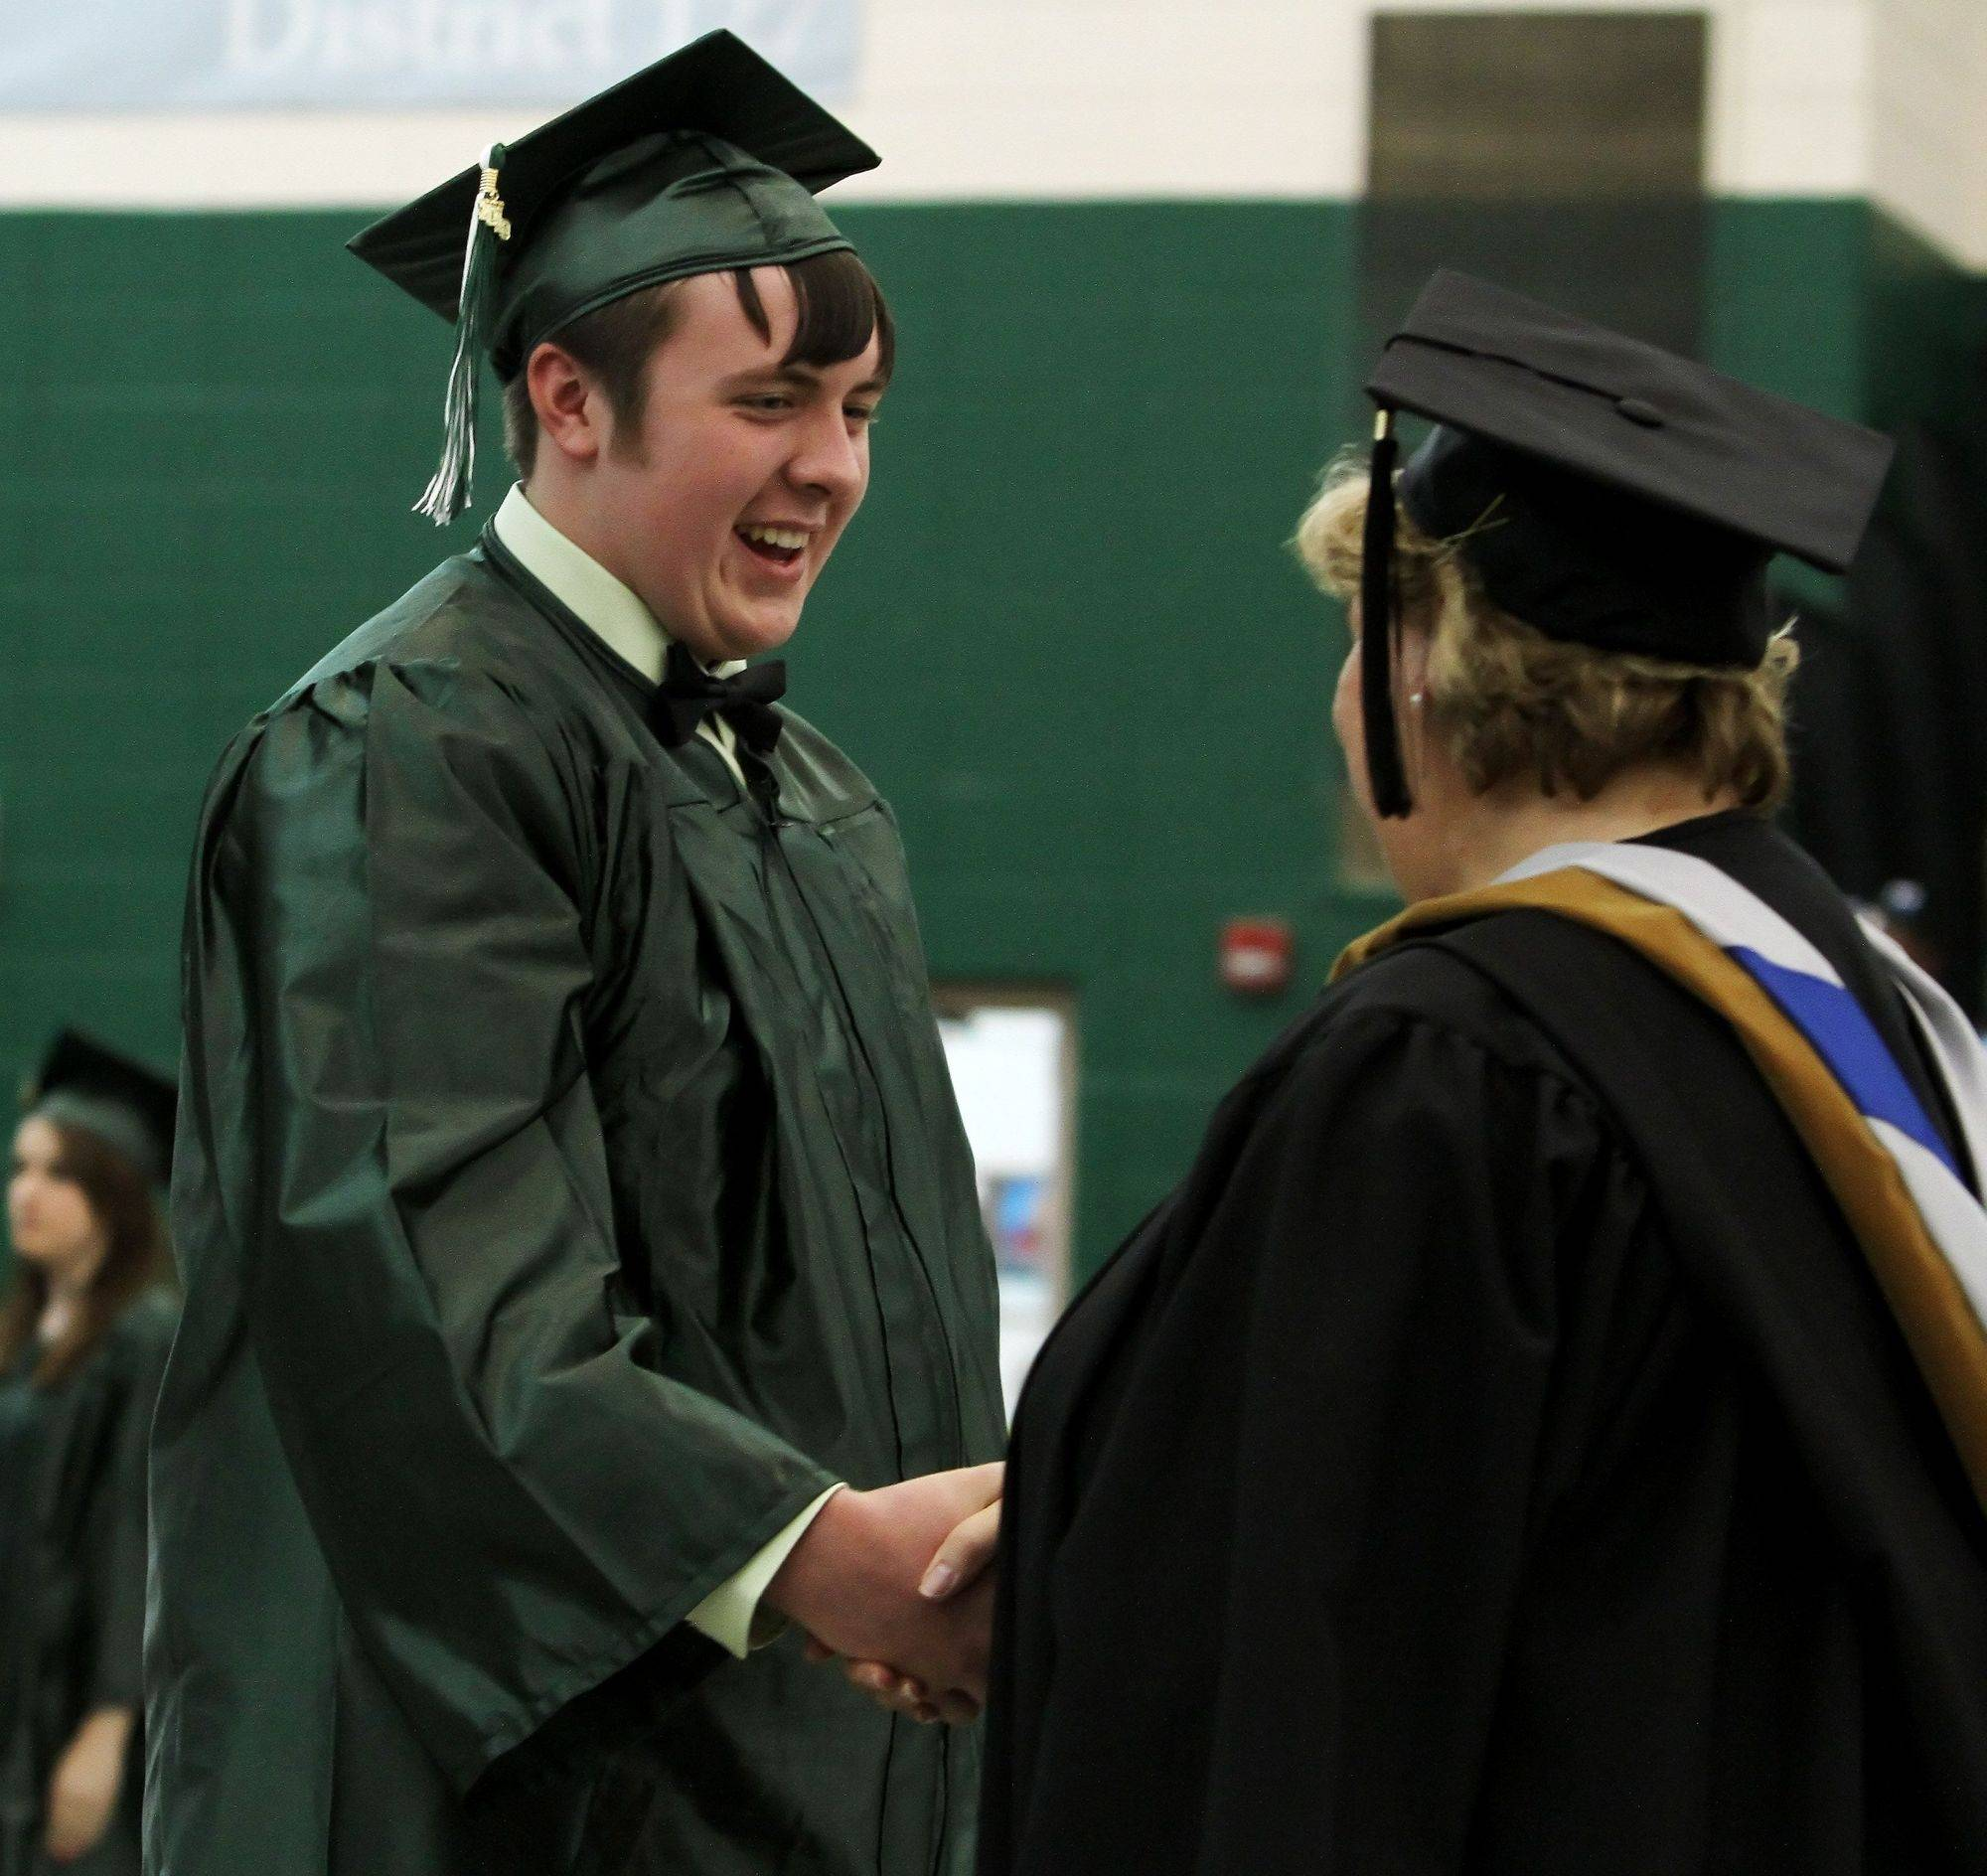 Joseph Domka shakes Principal Sydney Klocke's hand after receiving his diploma during the graduation ceremony Sunday at Grayslake Central High School.